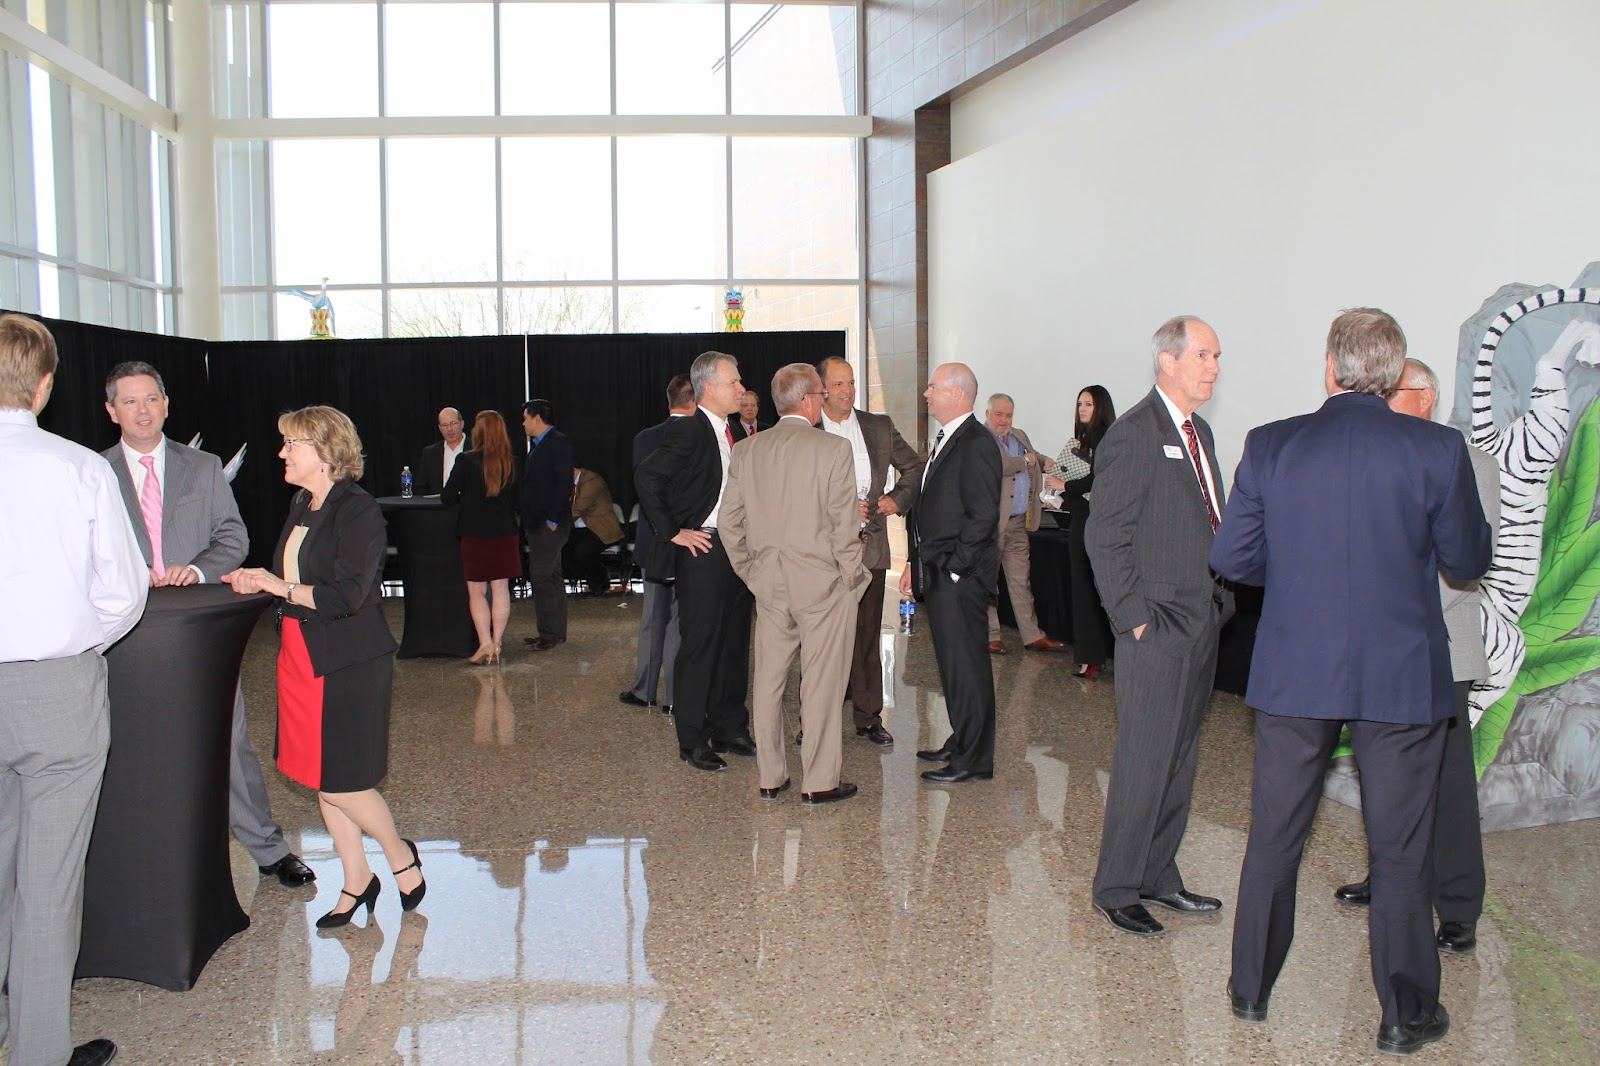 2016 State of the City - IMG_1921.JPG